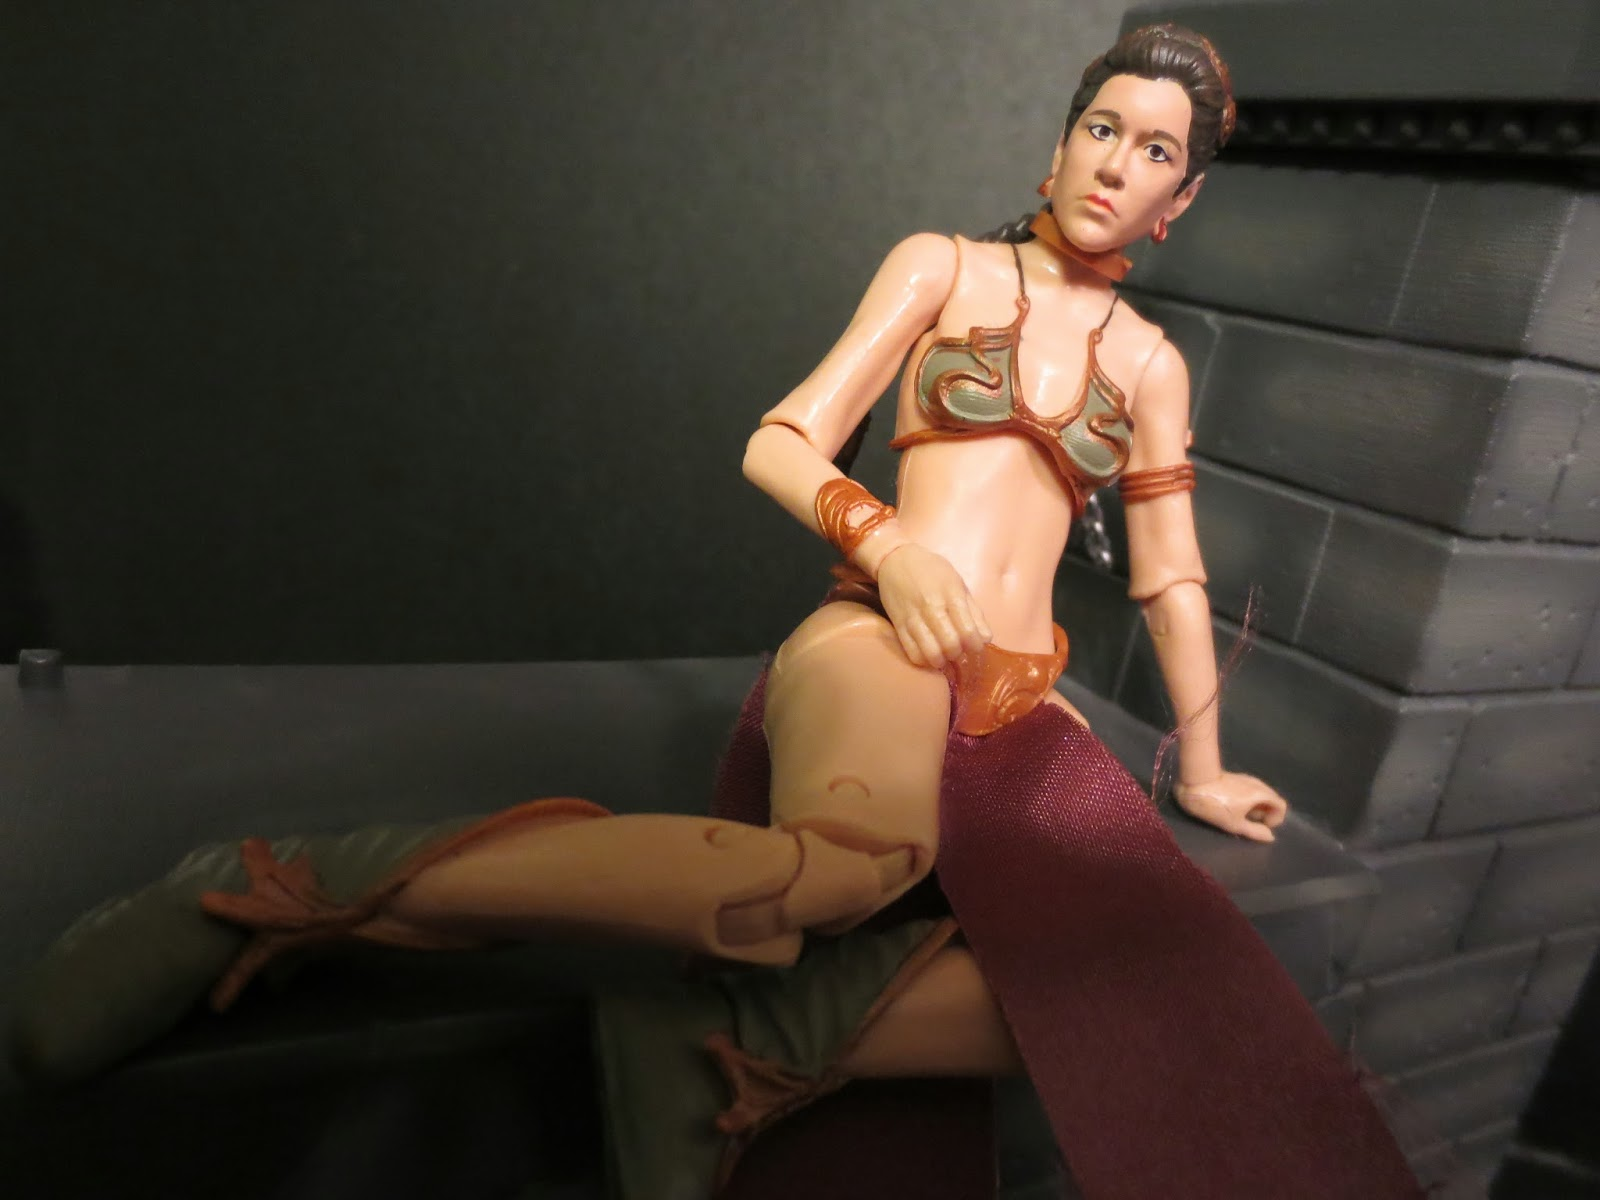 Princess leia nude sex photos